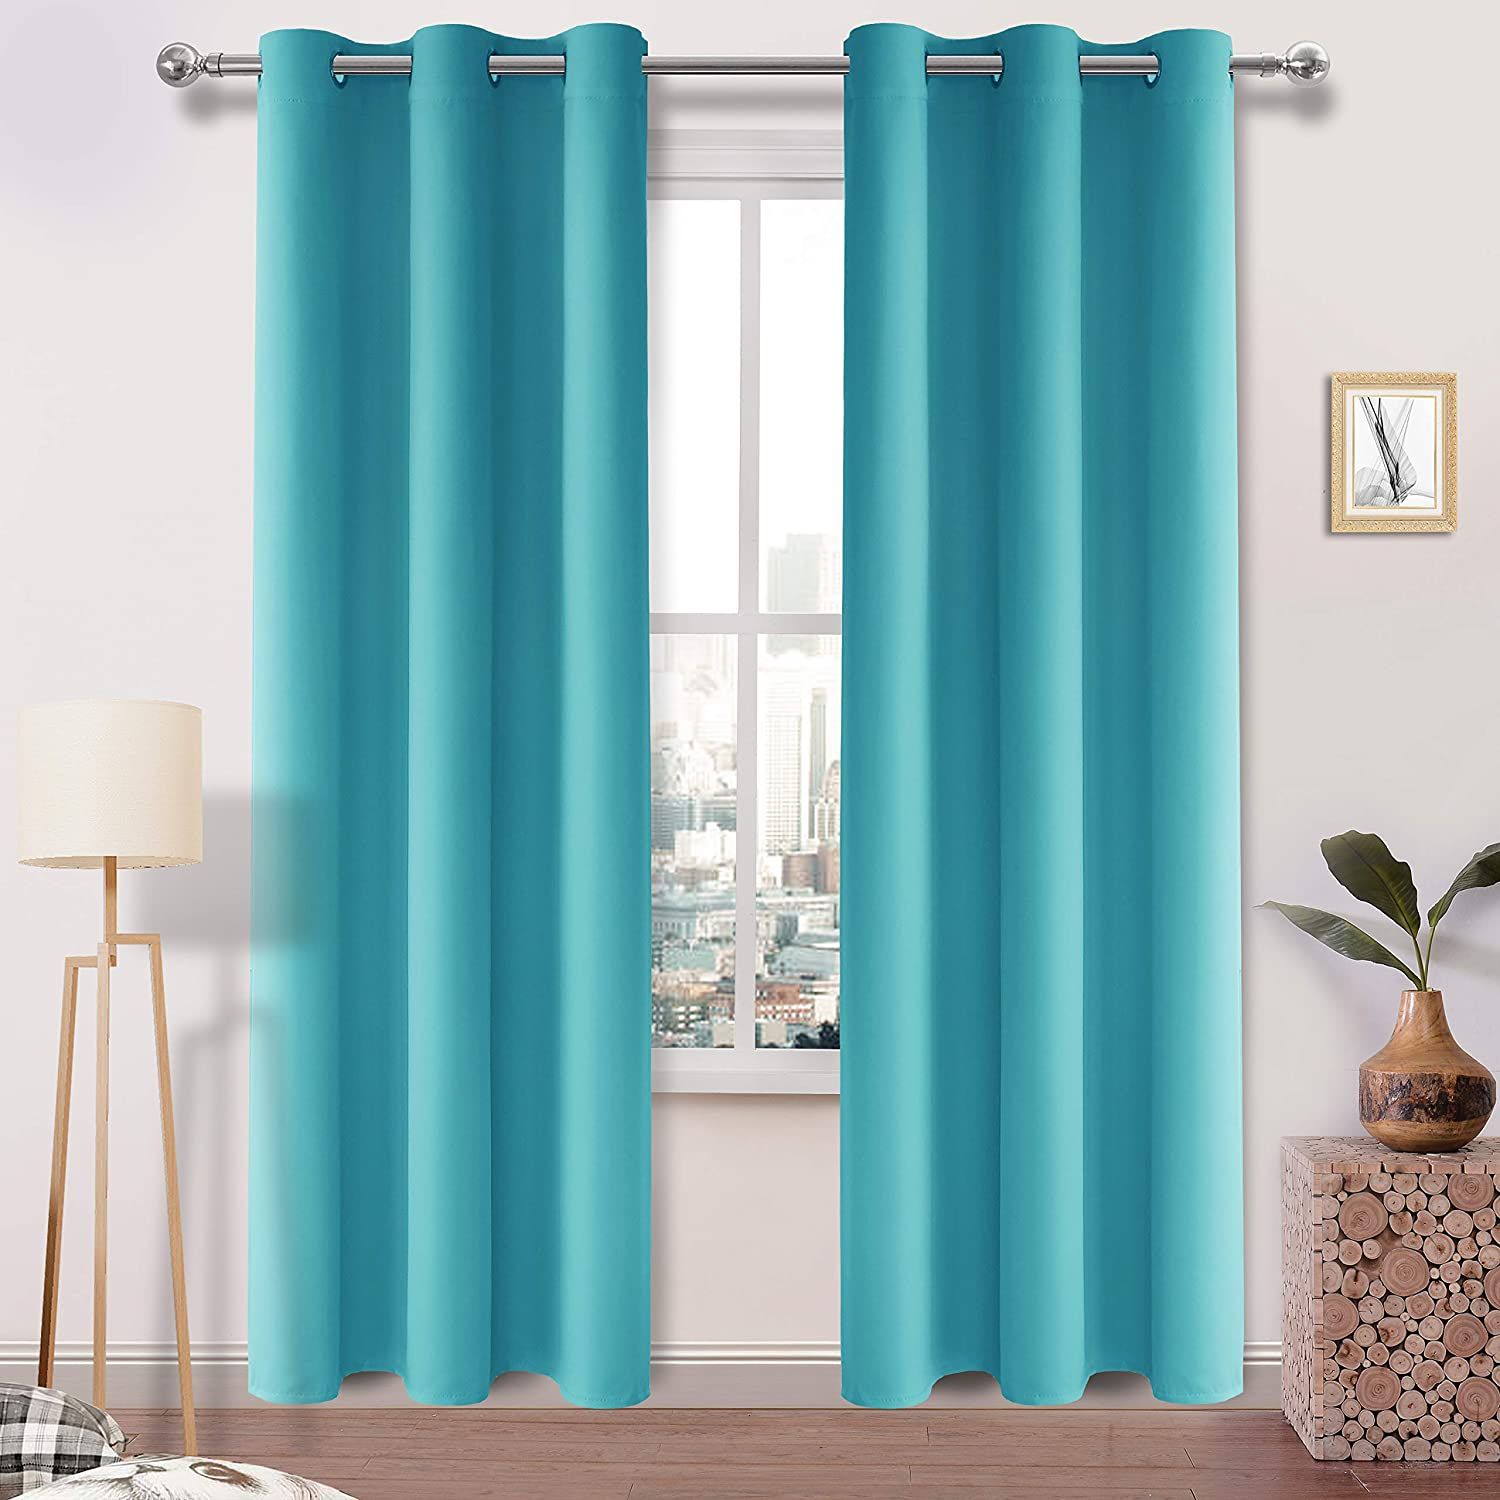 DWCN Turquoise Blackout Curtains - Room Darkening Thermal Insulated Living Room and Bedroom Curtains 38 x 84 inch Length, Set of 2 Window Curtain Panels